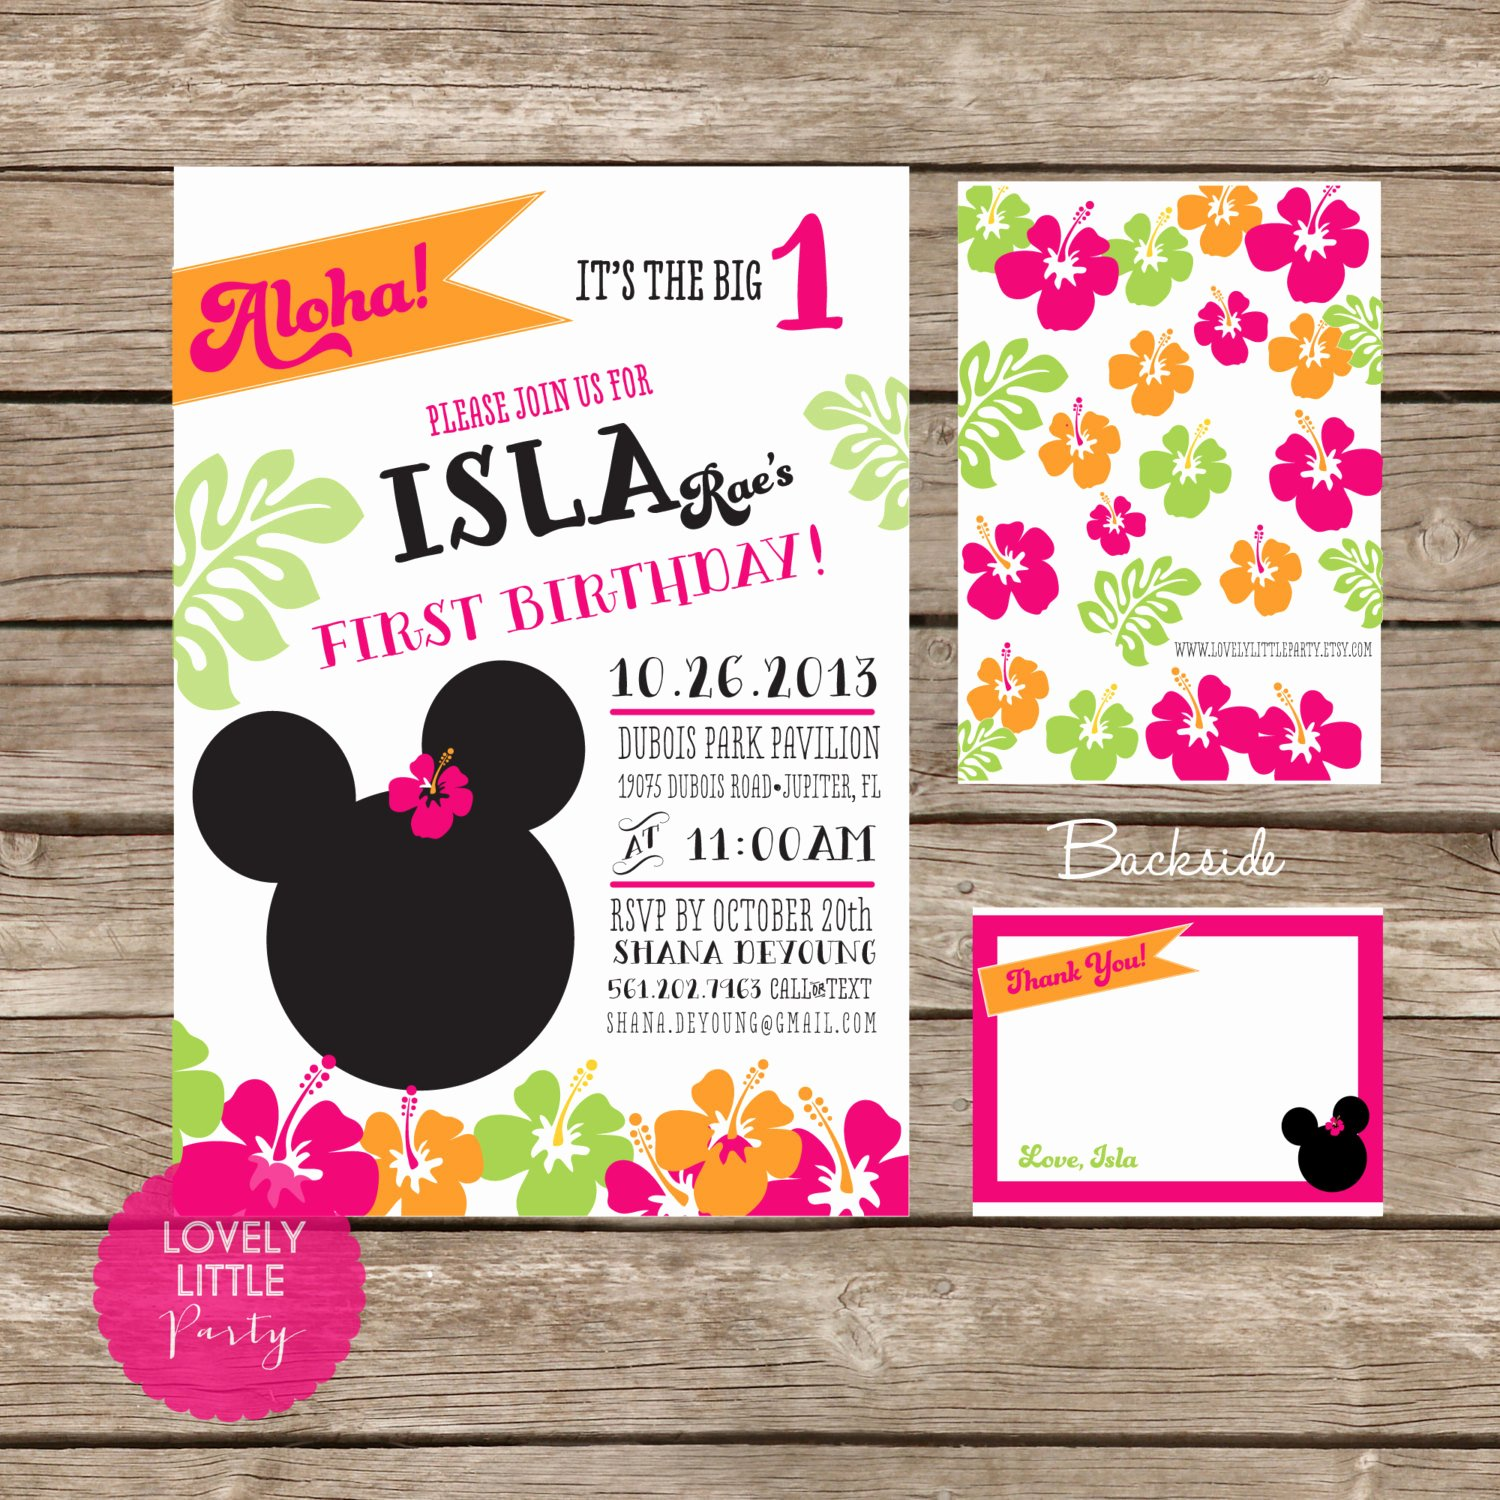 Homemade Minnie Mouse Invitations Elegant Diy Minnie Mouse Luau Invitation Kit Invite and Thank You